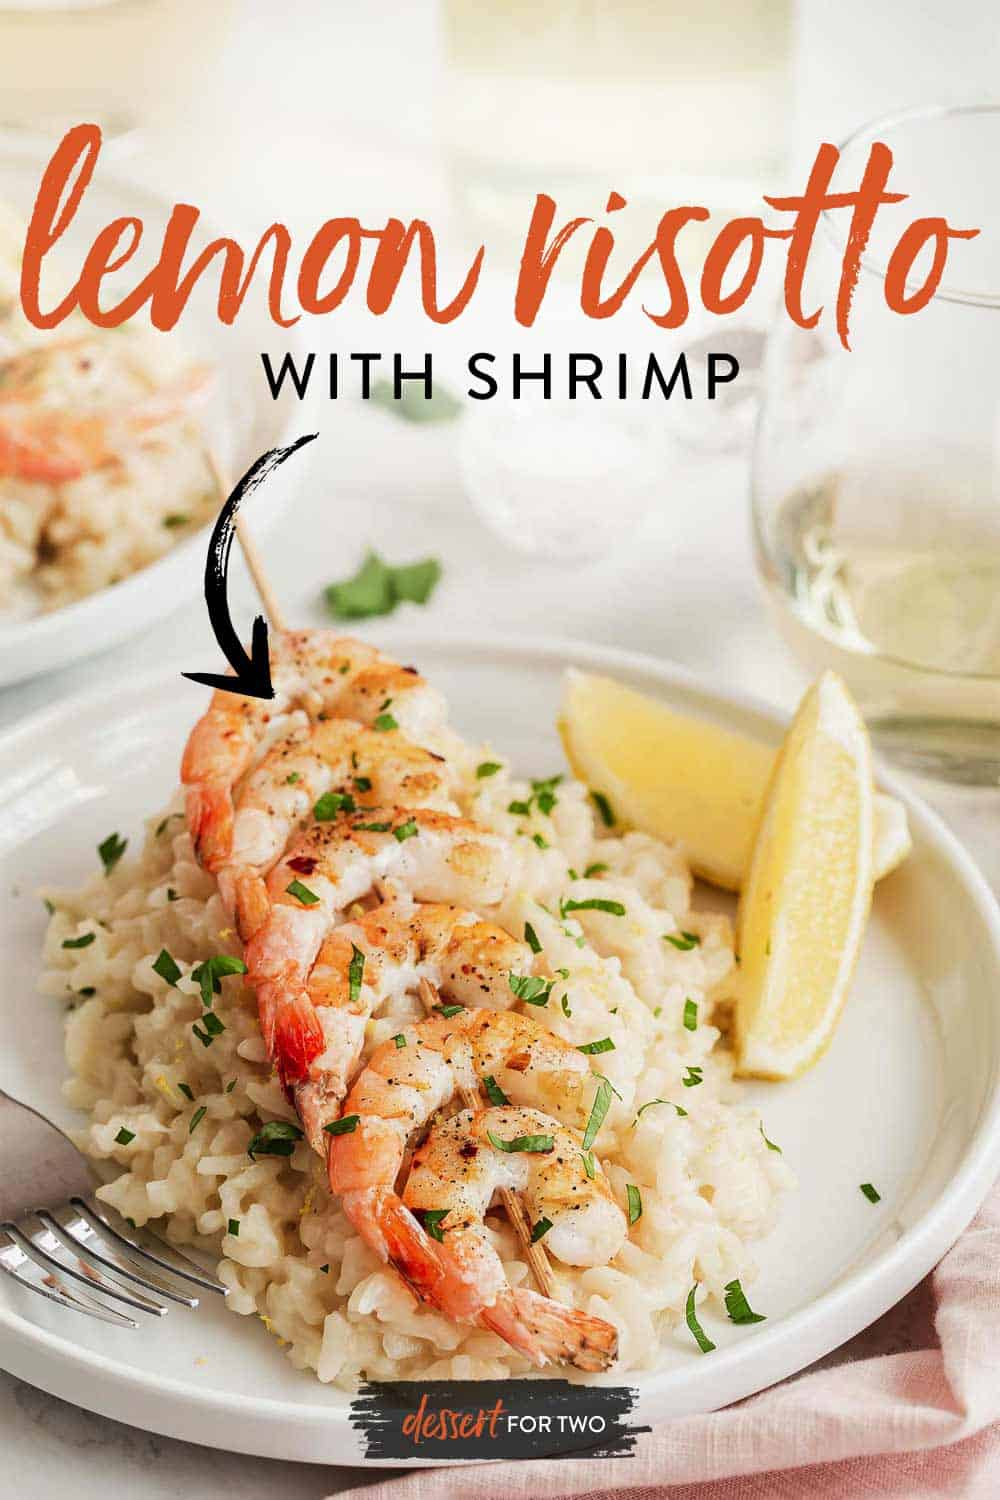 Plate of shrimp on top of creamy rice with lemon wedges and white wine.